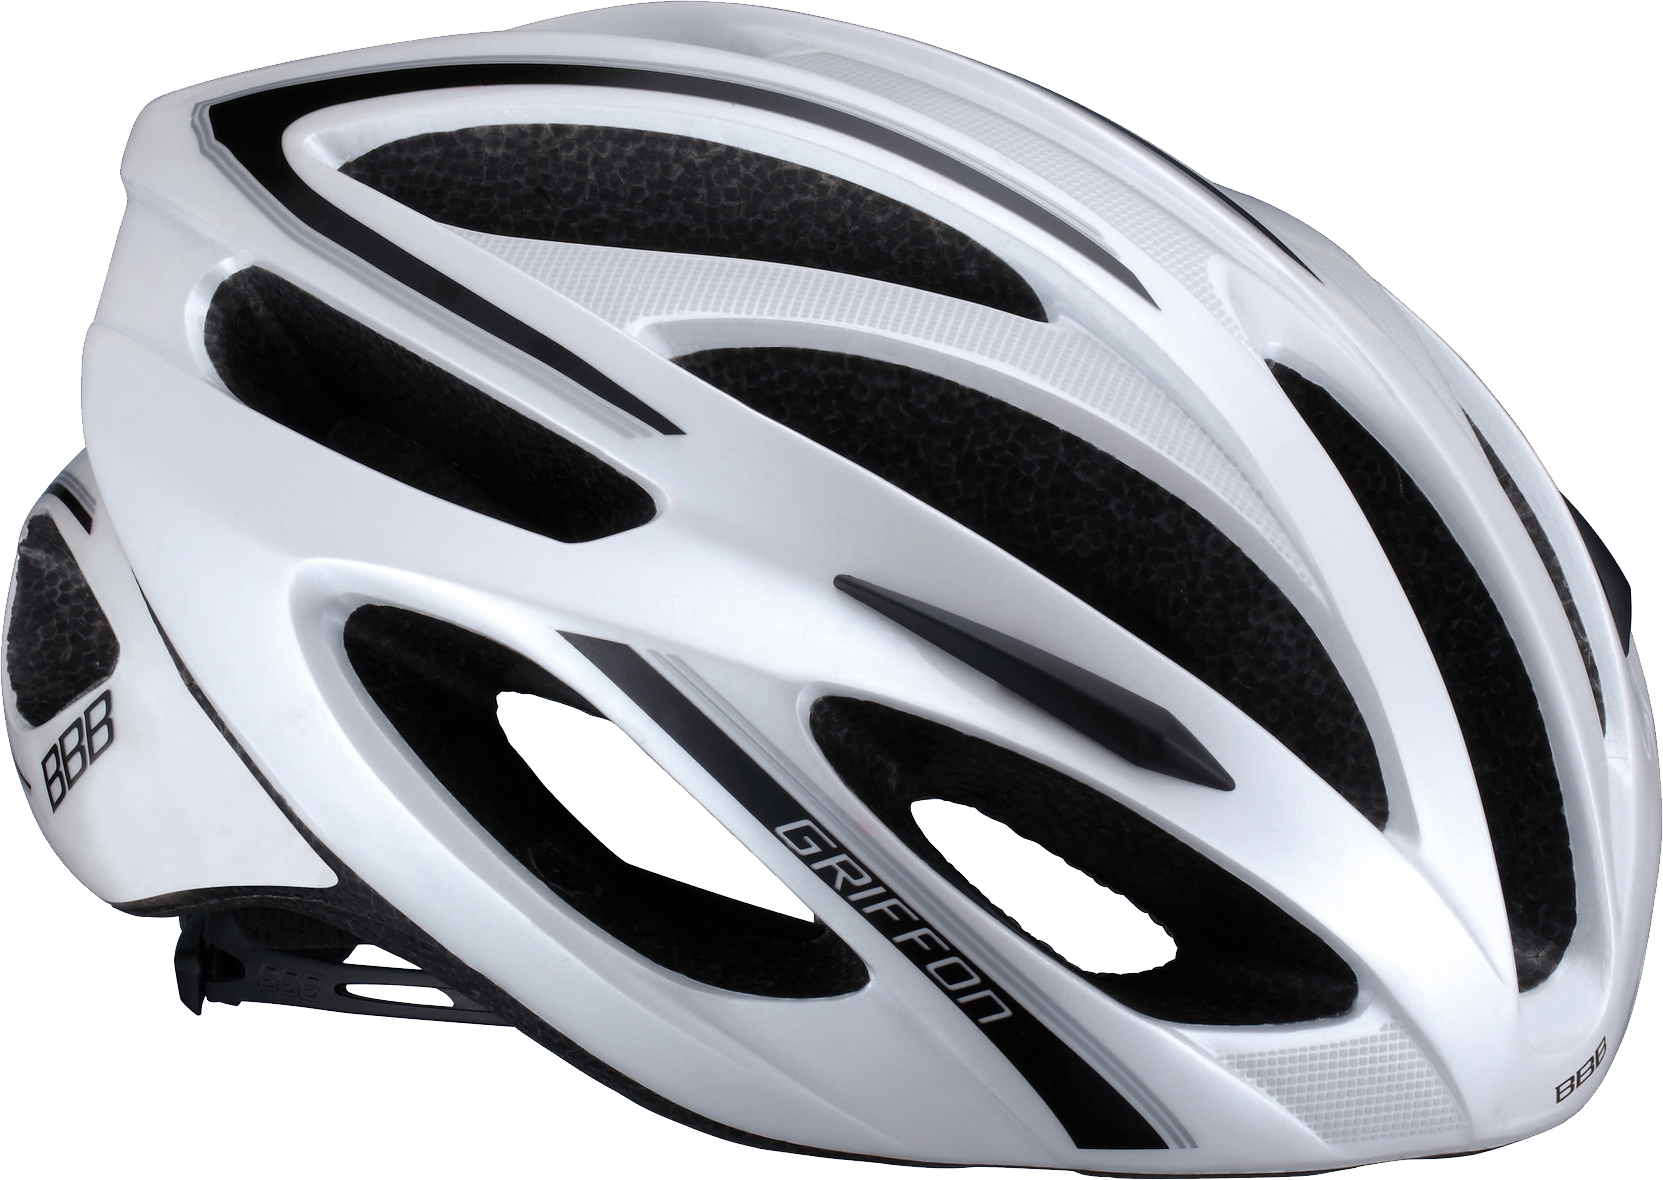 Free download of Bicycle Helmets PNG Image Without Background